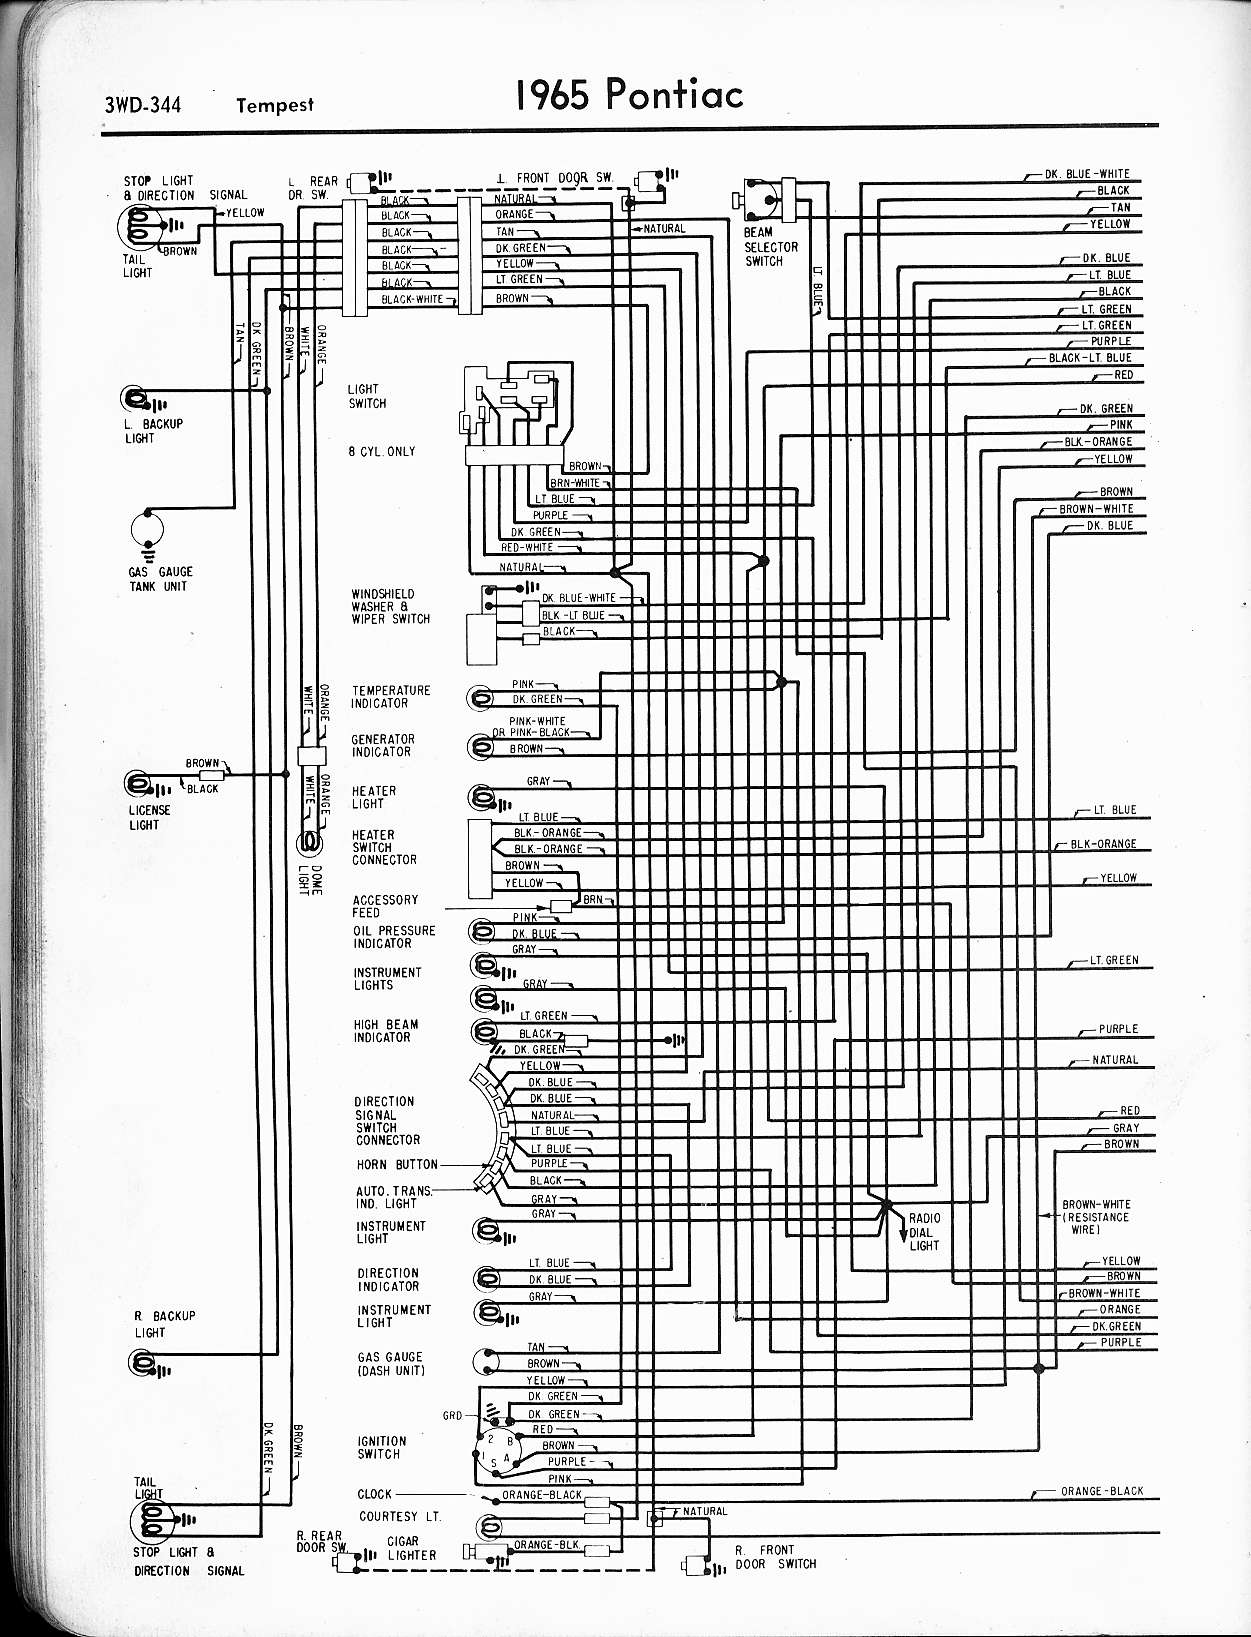 67 chevelle dash wiring diagram free download anything wiring rh johnparkinson me 1970 Corvette Wiring Diagram 1970 Firebird Wiring Diagram